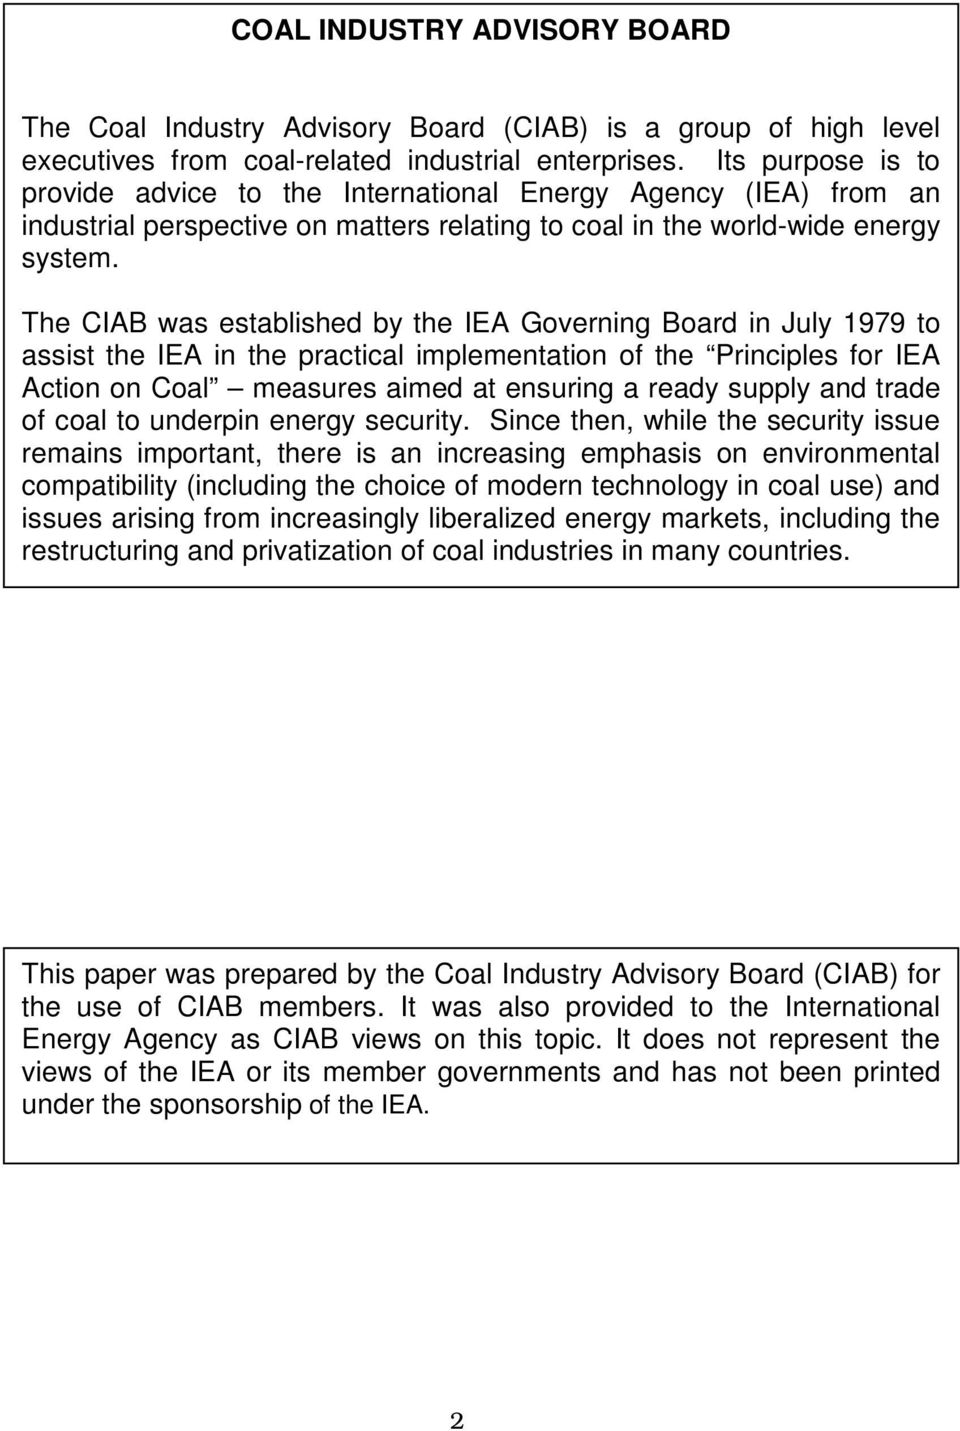 The CIAB was established by the IEA Governing Board in July 1979 to assist the IEA in the practical implementation of the Principles for IEA Action on Coal measures aimed at ensuring a ready supply